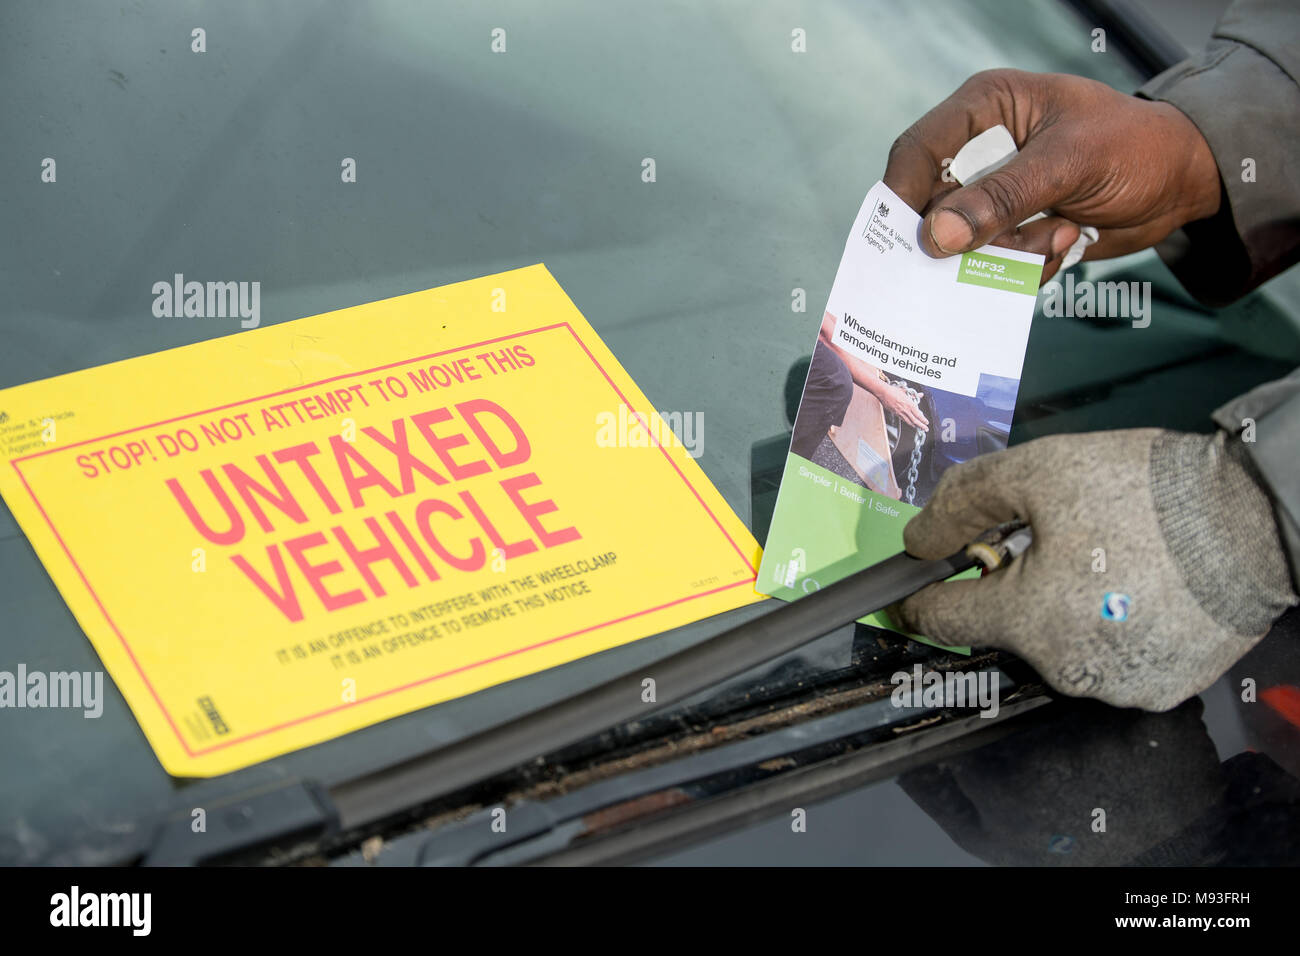 Wheel clamping of untaxed vehicles is becoming more common with the paper tax disc display being abolished and car tax needing to be paid online. - Stock Image